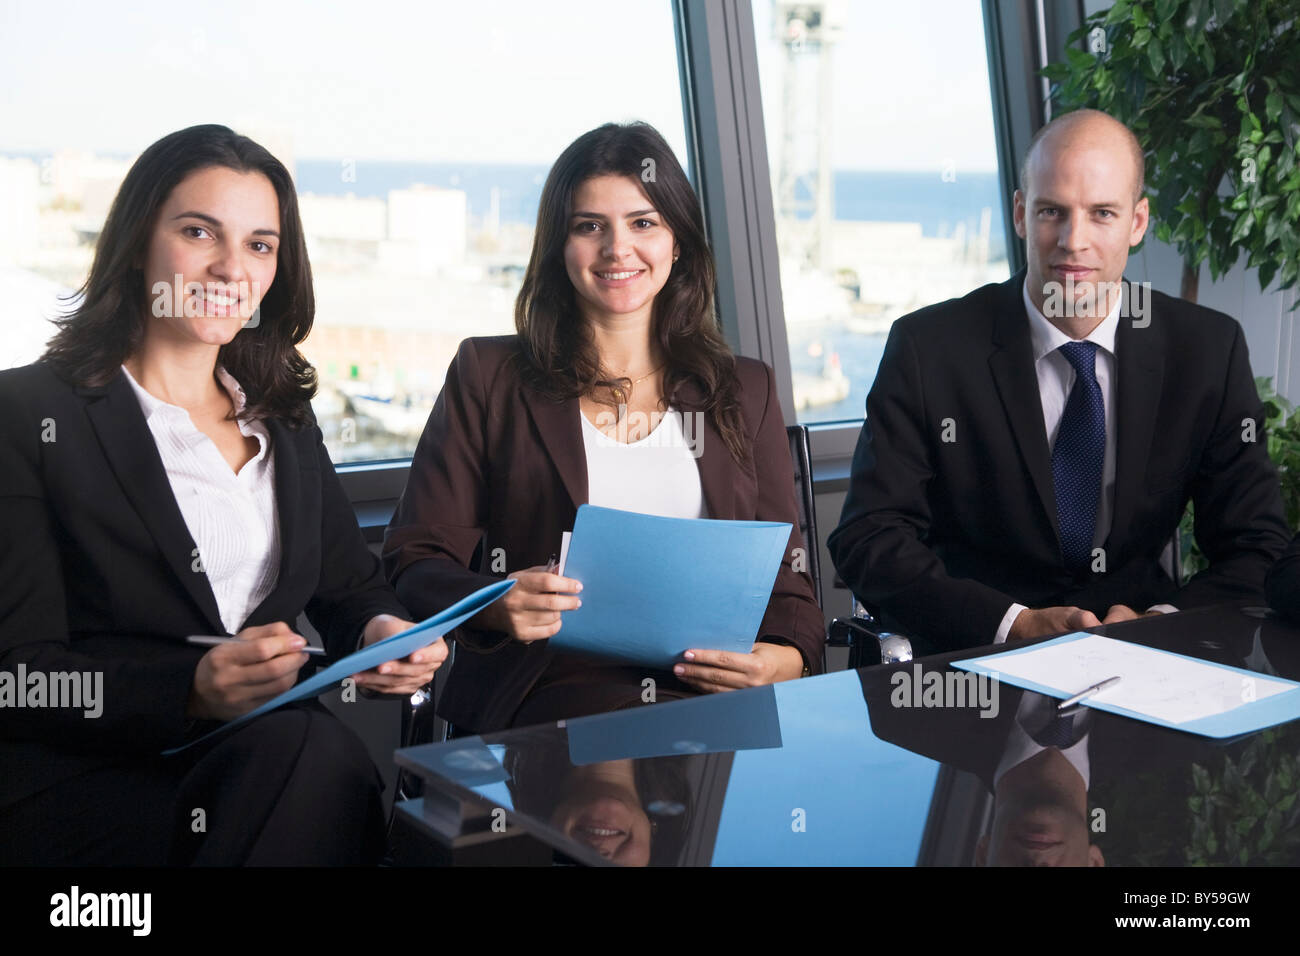 Businessteam of three persons relaxed at the table - Stock Image